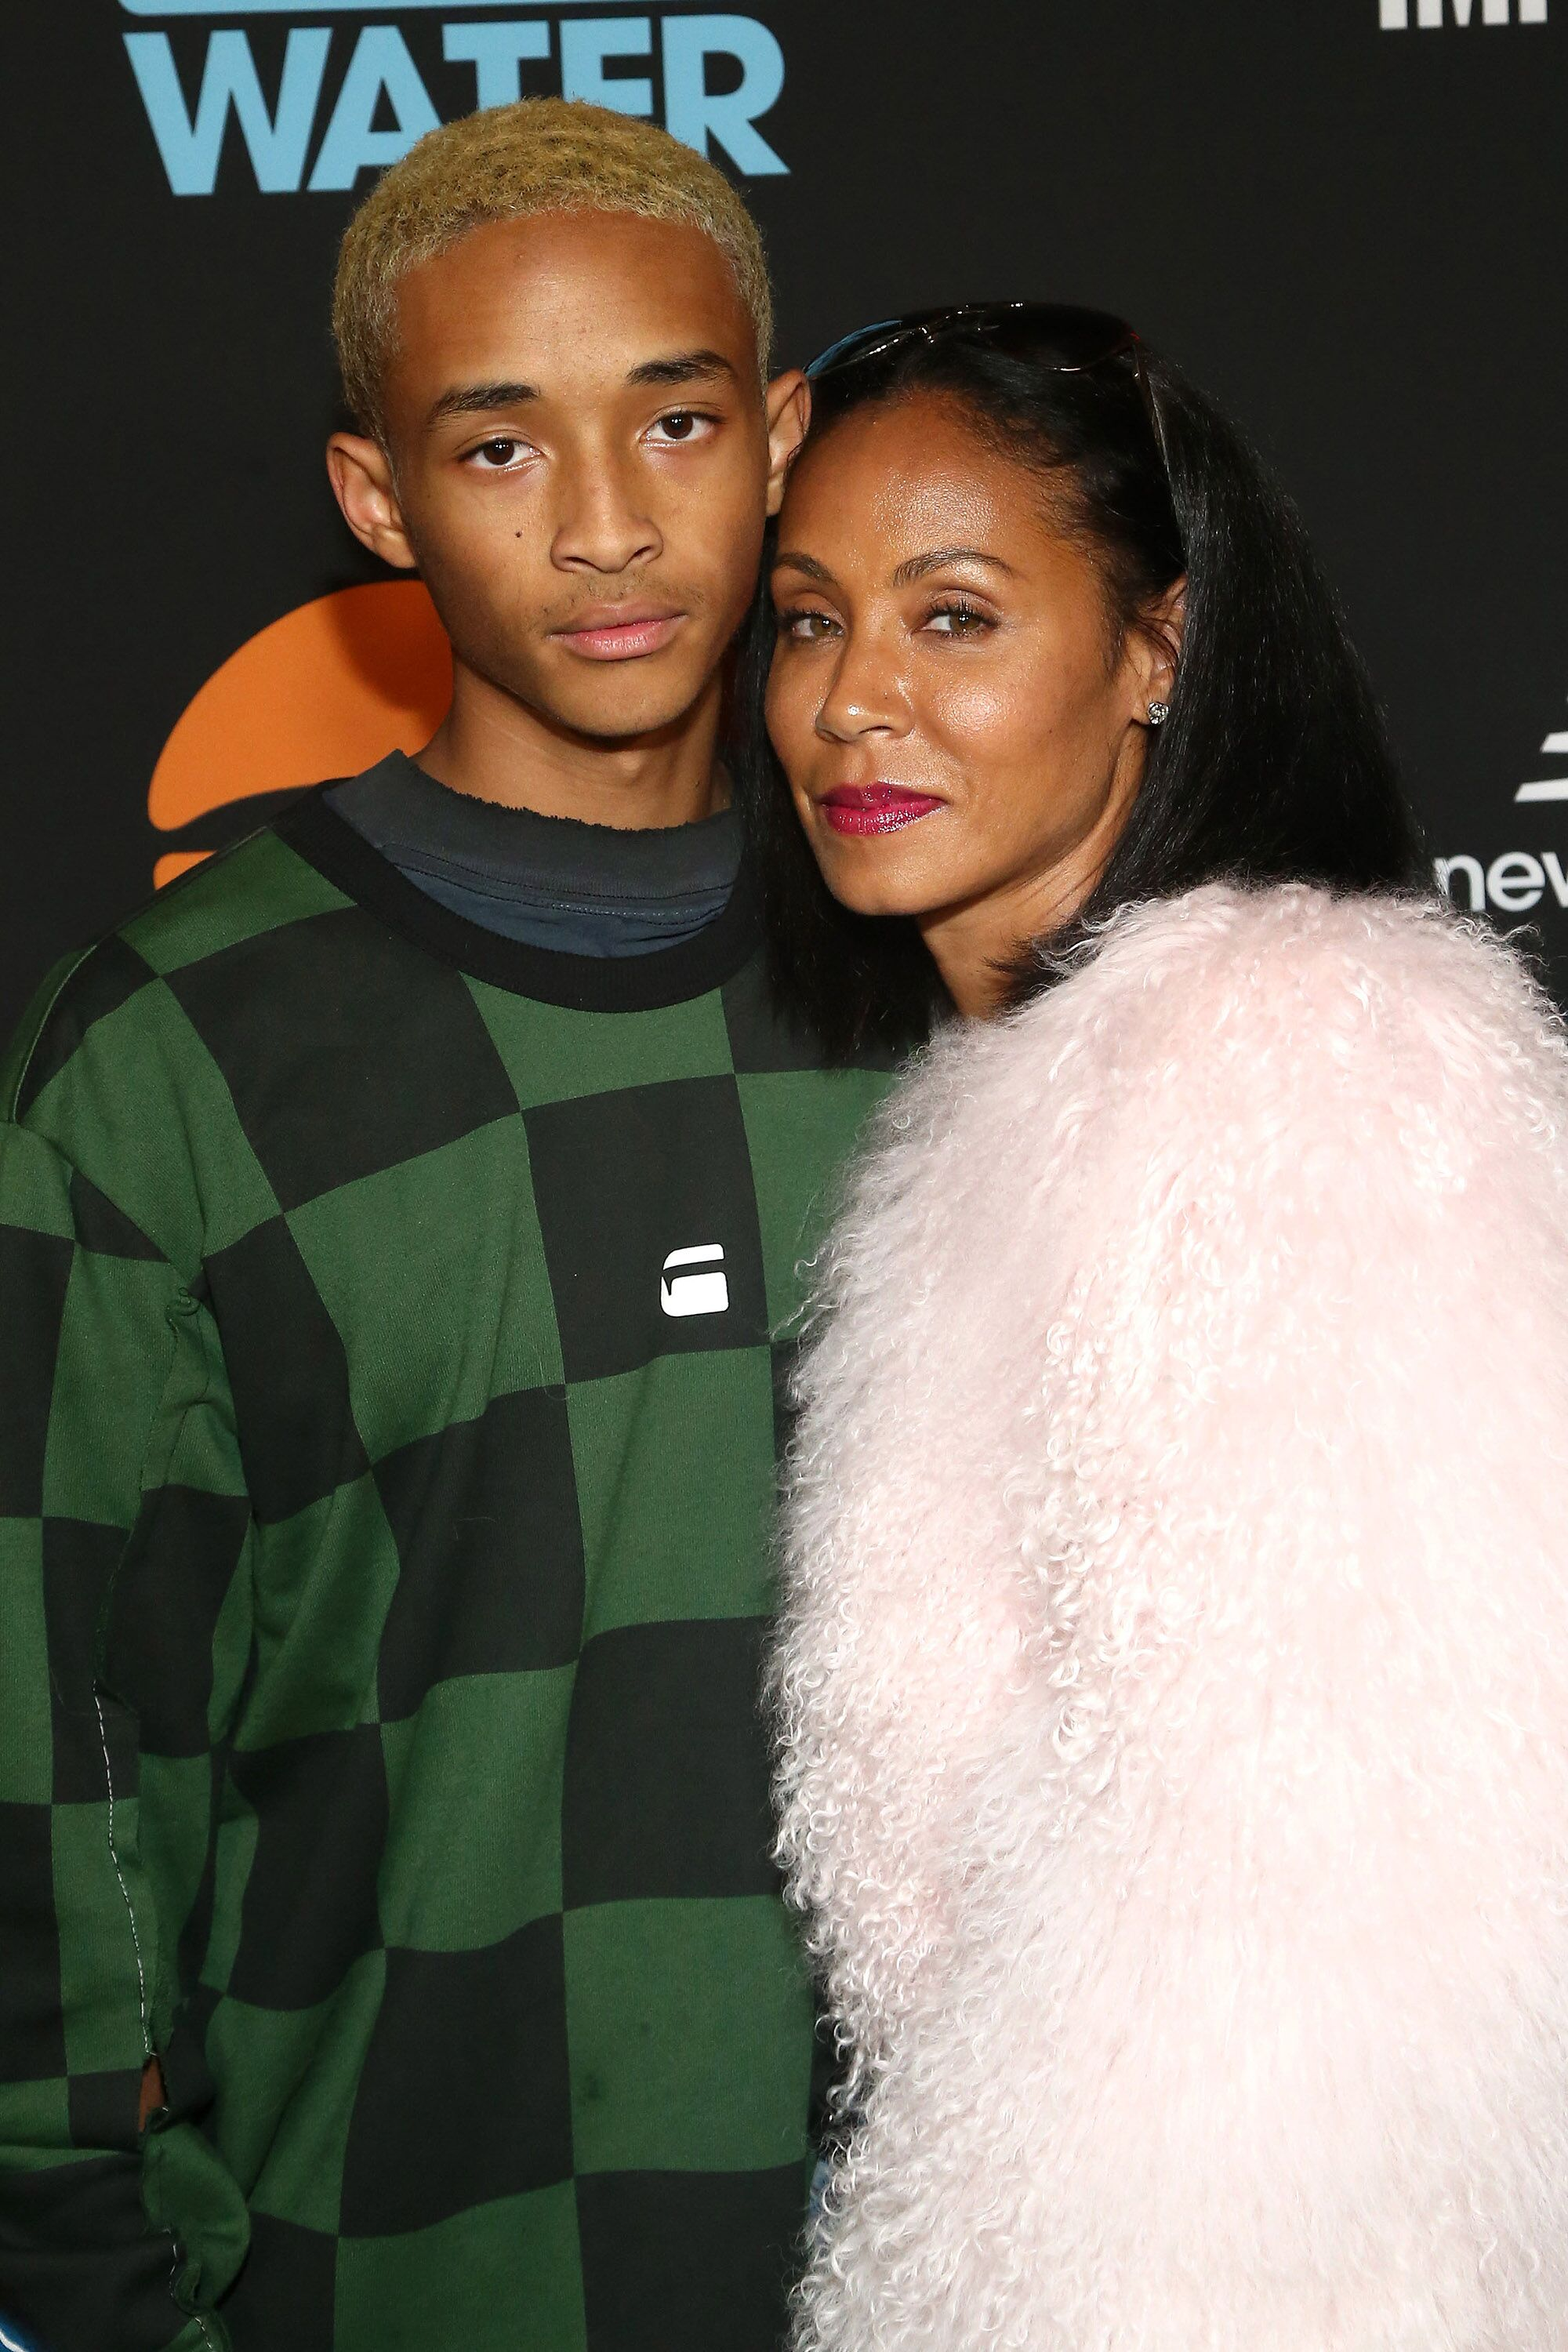 Jaden Smith and his mother Jada Pinkett Smith at a Just Water event in 2019/ Source; Gertty Images